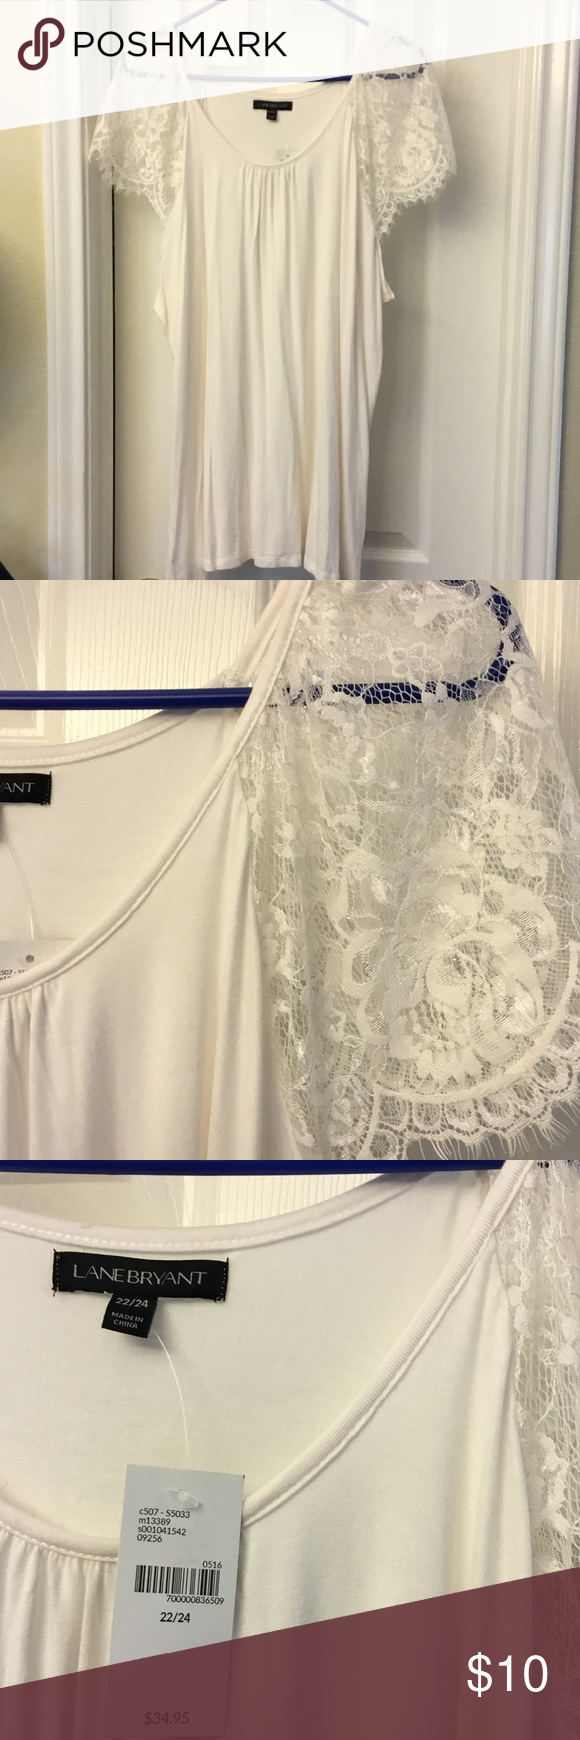 Top White lace sleeves, 97% rayon 3% spandex, size 22/24 Lane Bryant Tops Blouses